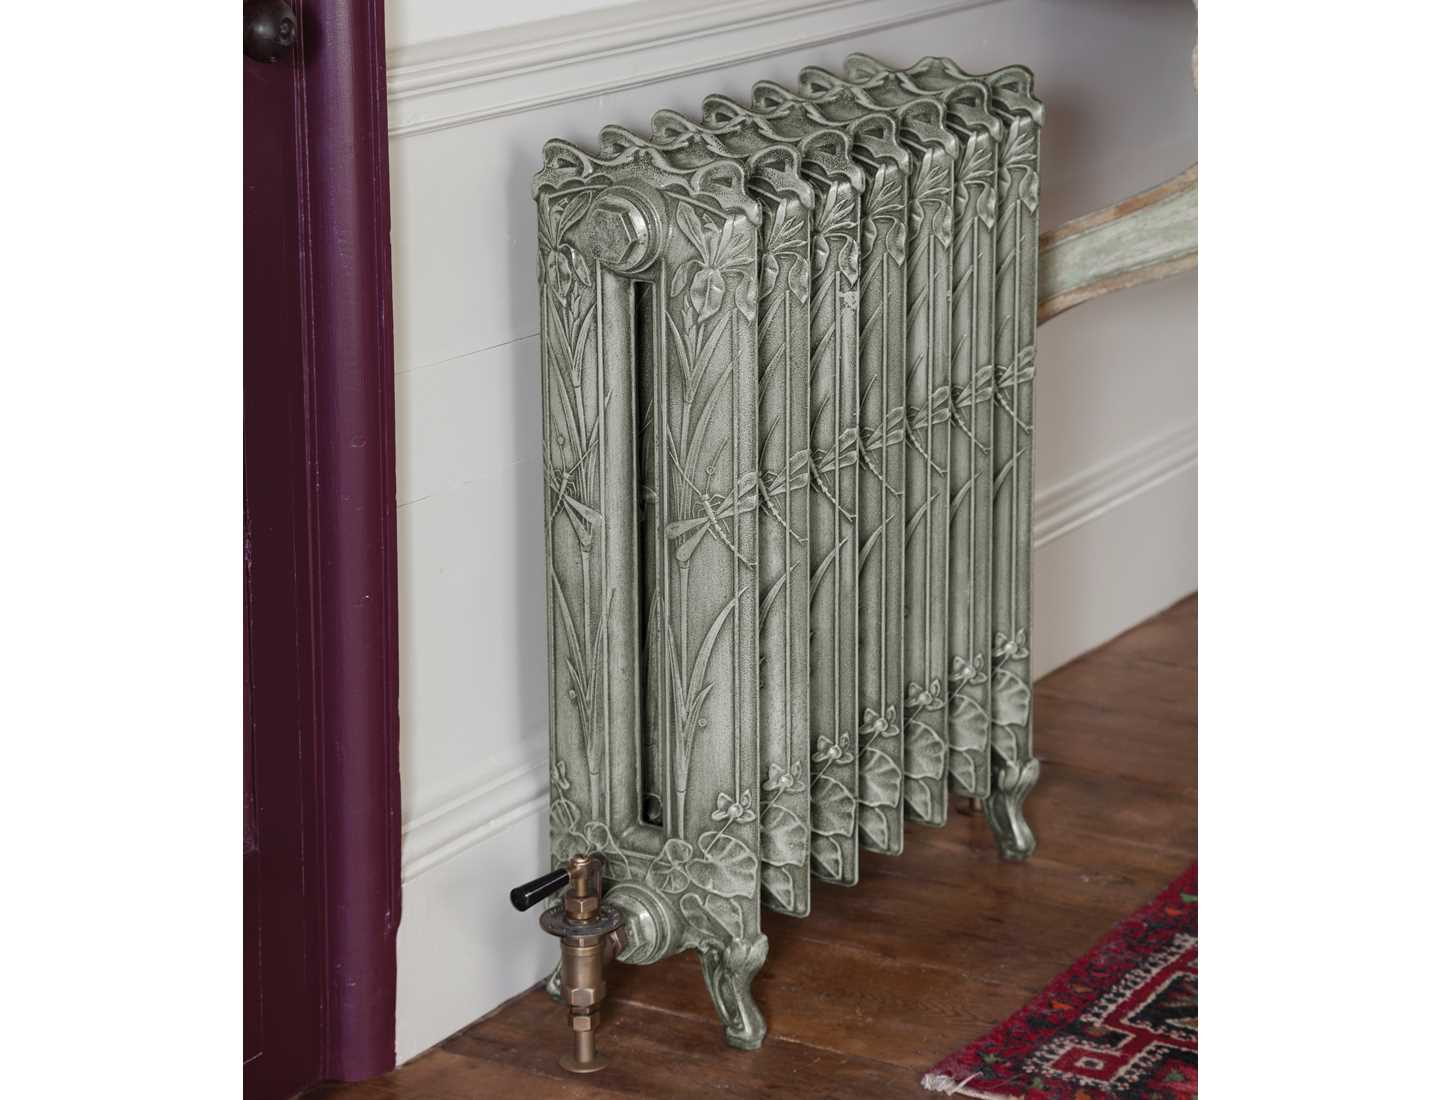 Lily cast iron radiator finished in antiqued french grey paint